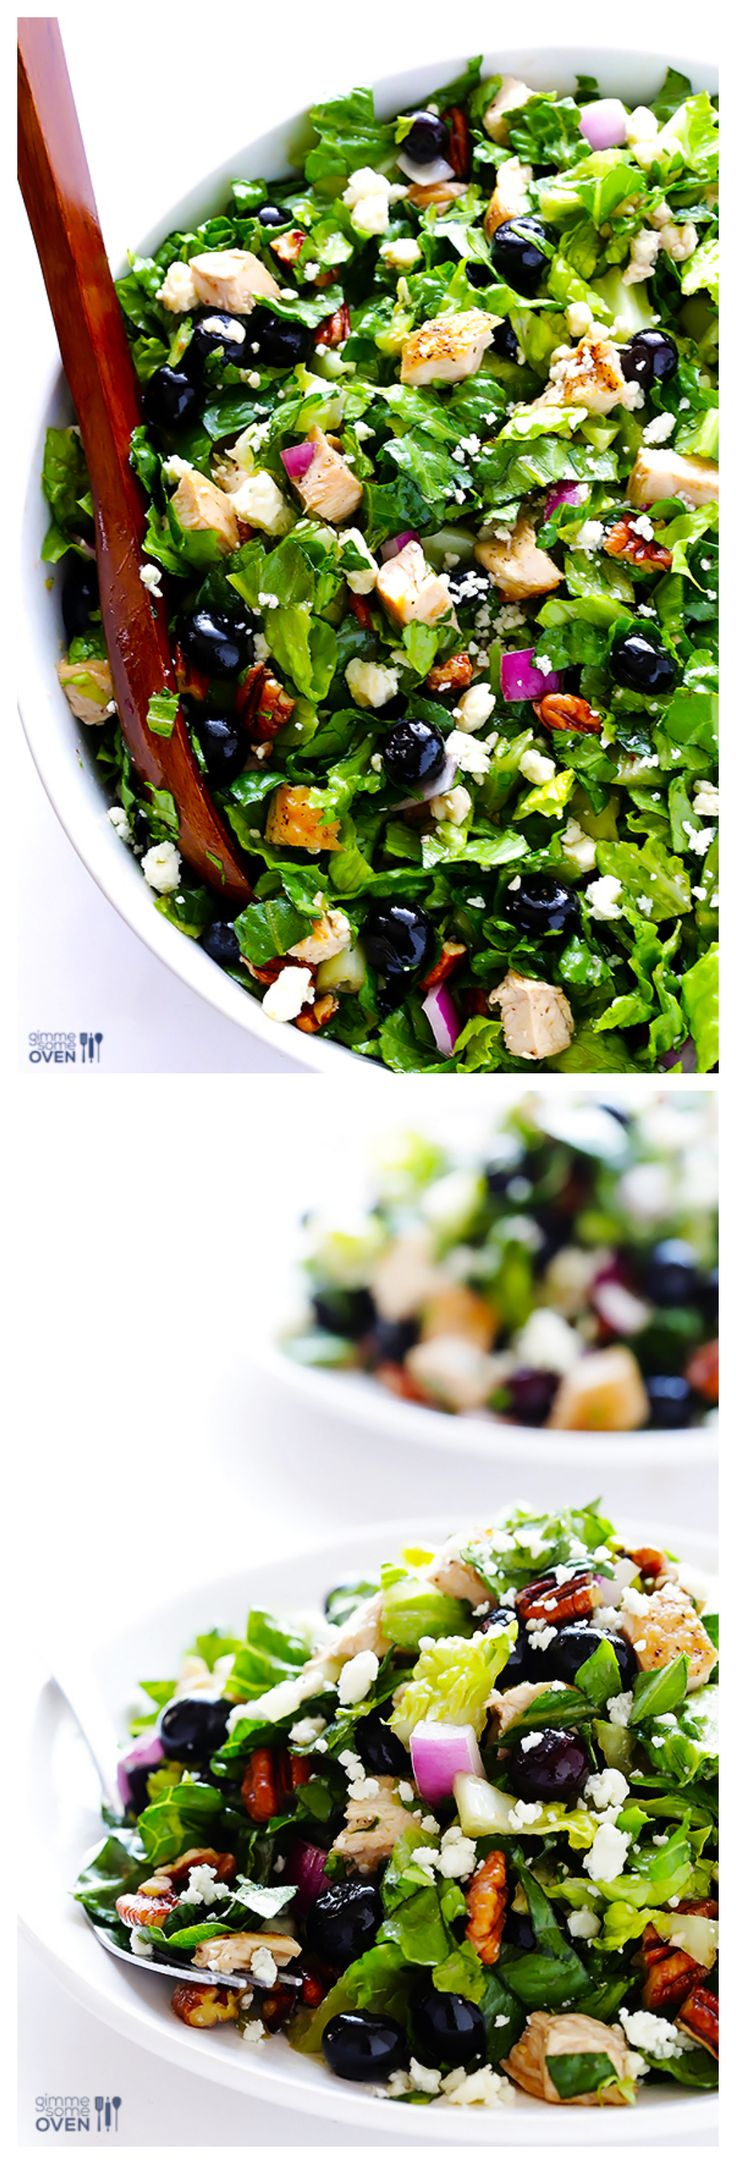 Blueberry Chicken Chopped #Salad #recipe. Find local #cooking #schools on #Educator #Hub [EducatorHub.com]